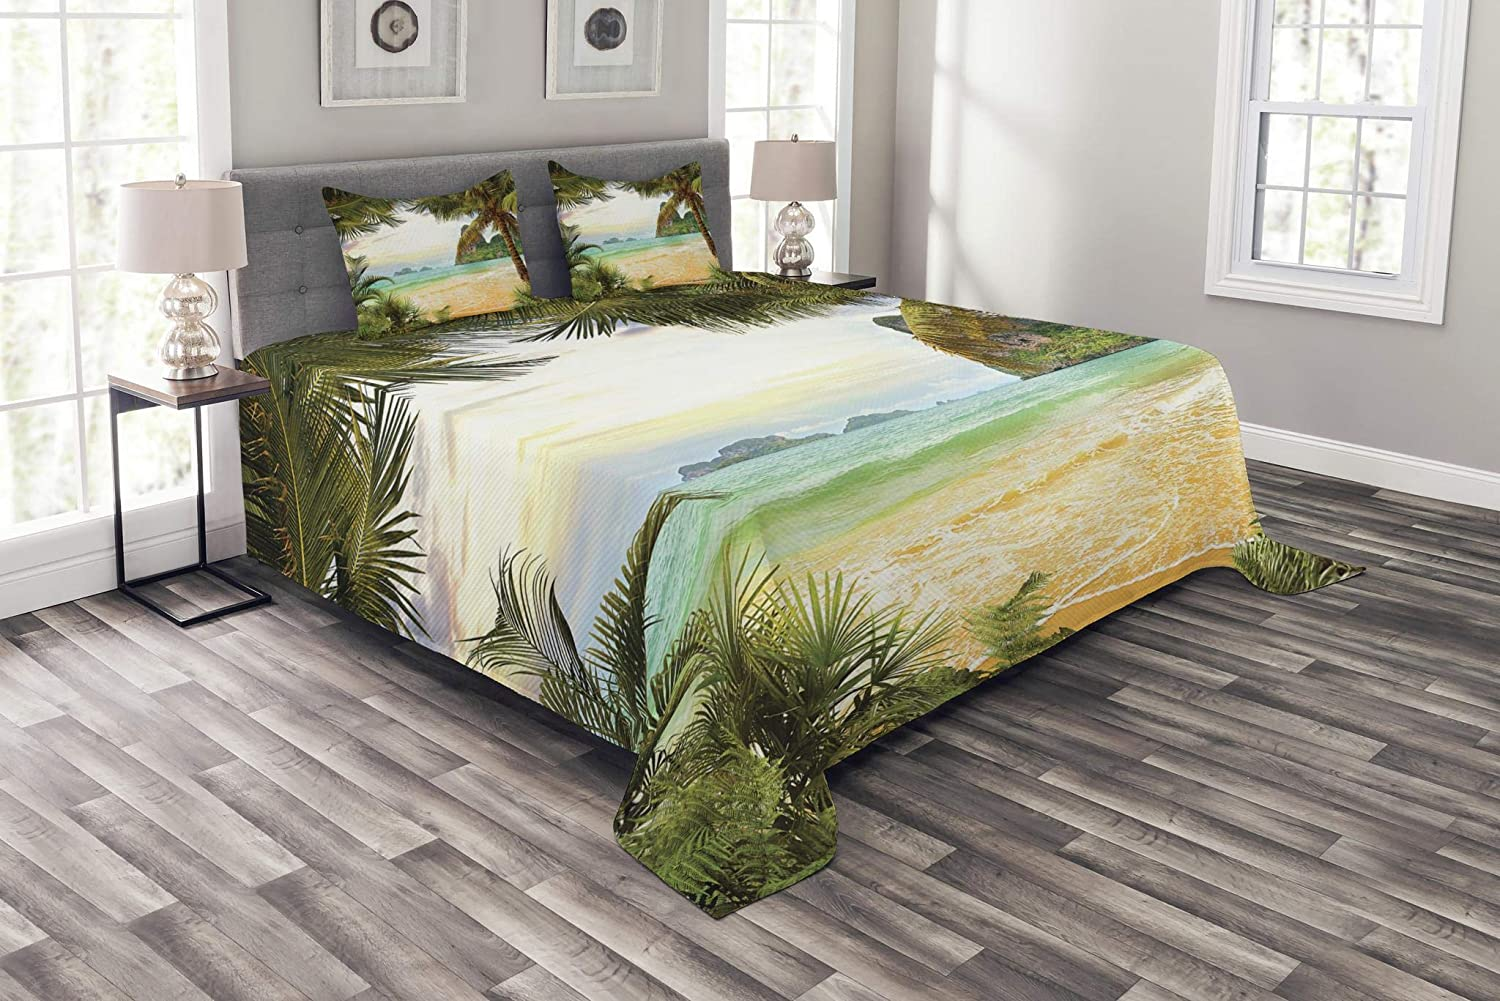 Ambesonne Ocean Bedspread, Palm Coconut Trees and Ocean Waves Mountains on Paradise Island Beach Image, Decorative Quilted 3 Piece Coverlet Set with 2 Pillow Shams, Queen Size, Green Cream